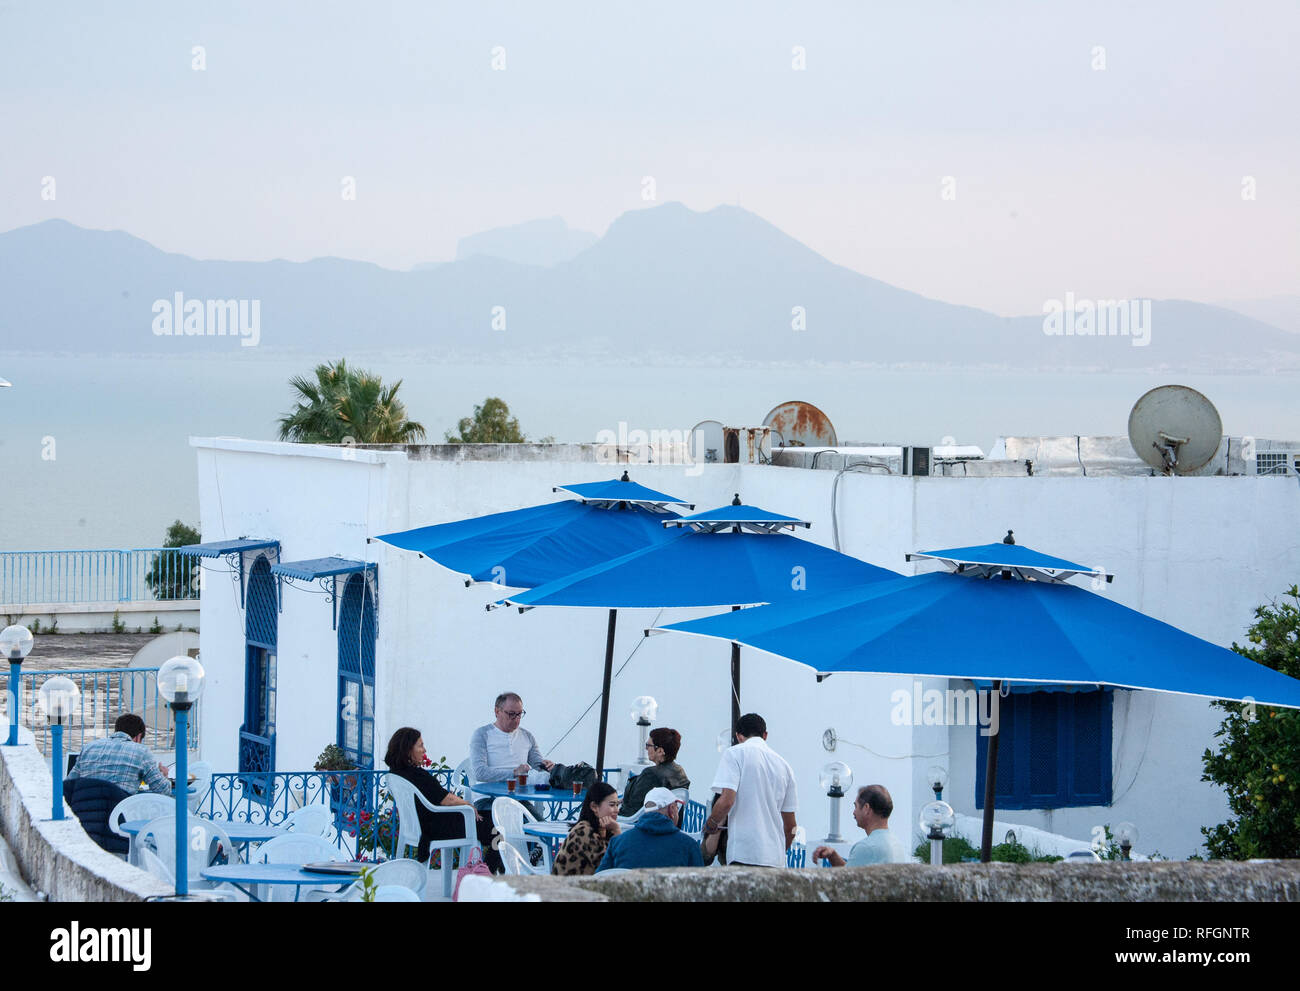 People at cafe. Behind sea and mountains - Stock Image